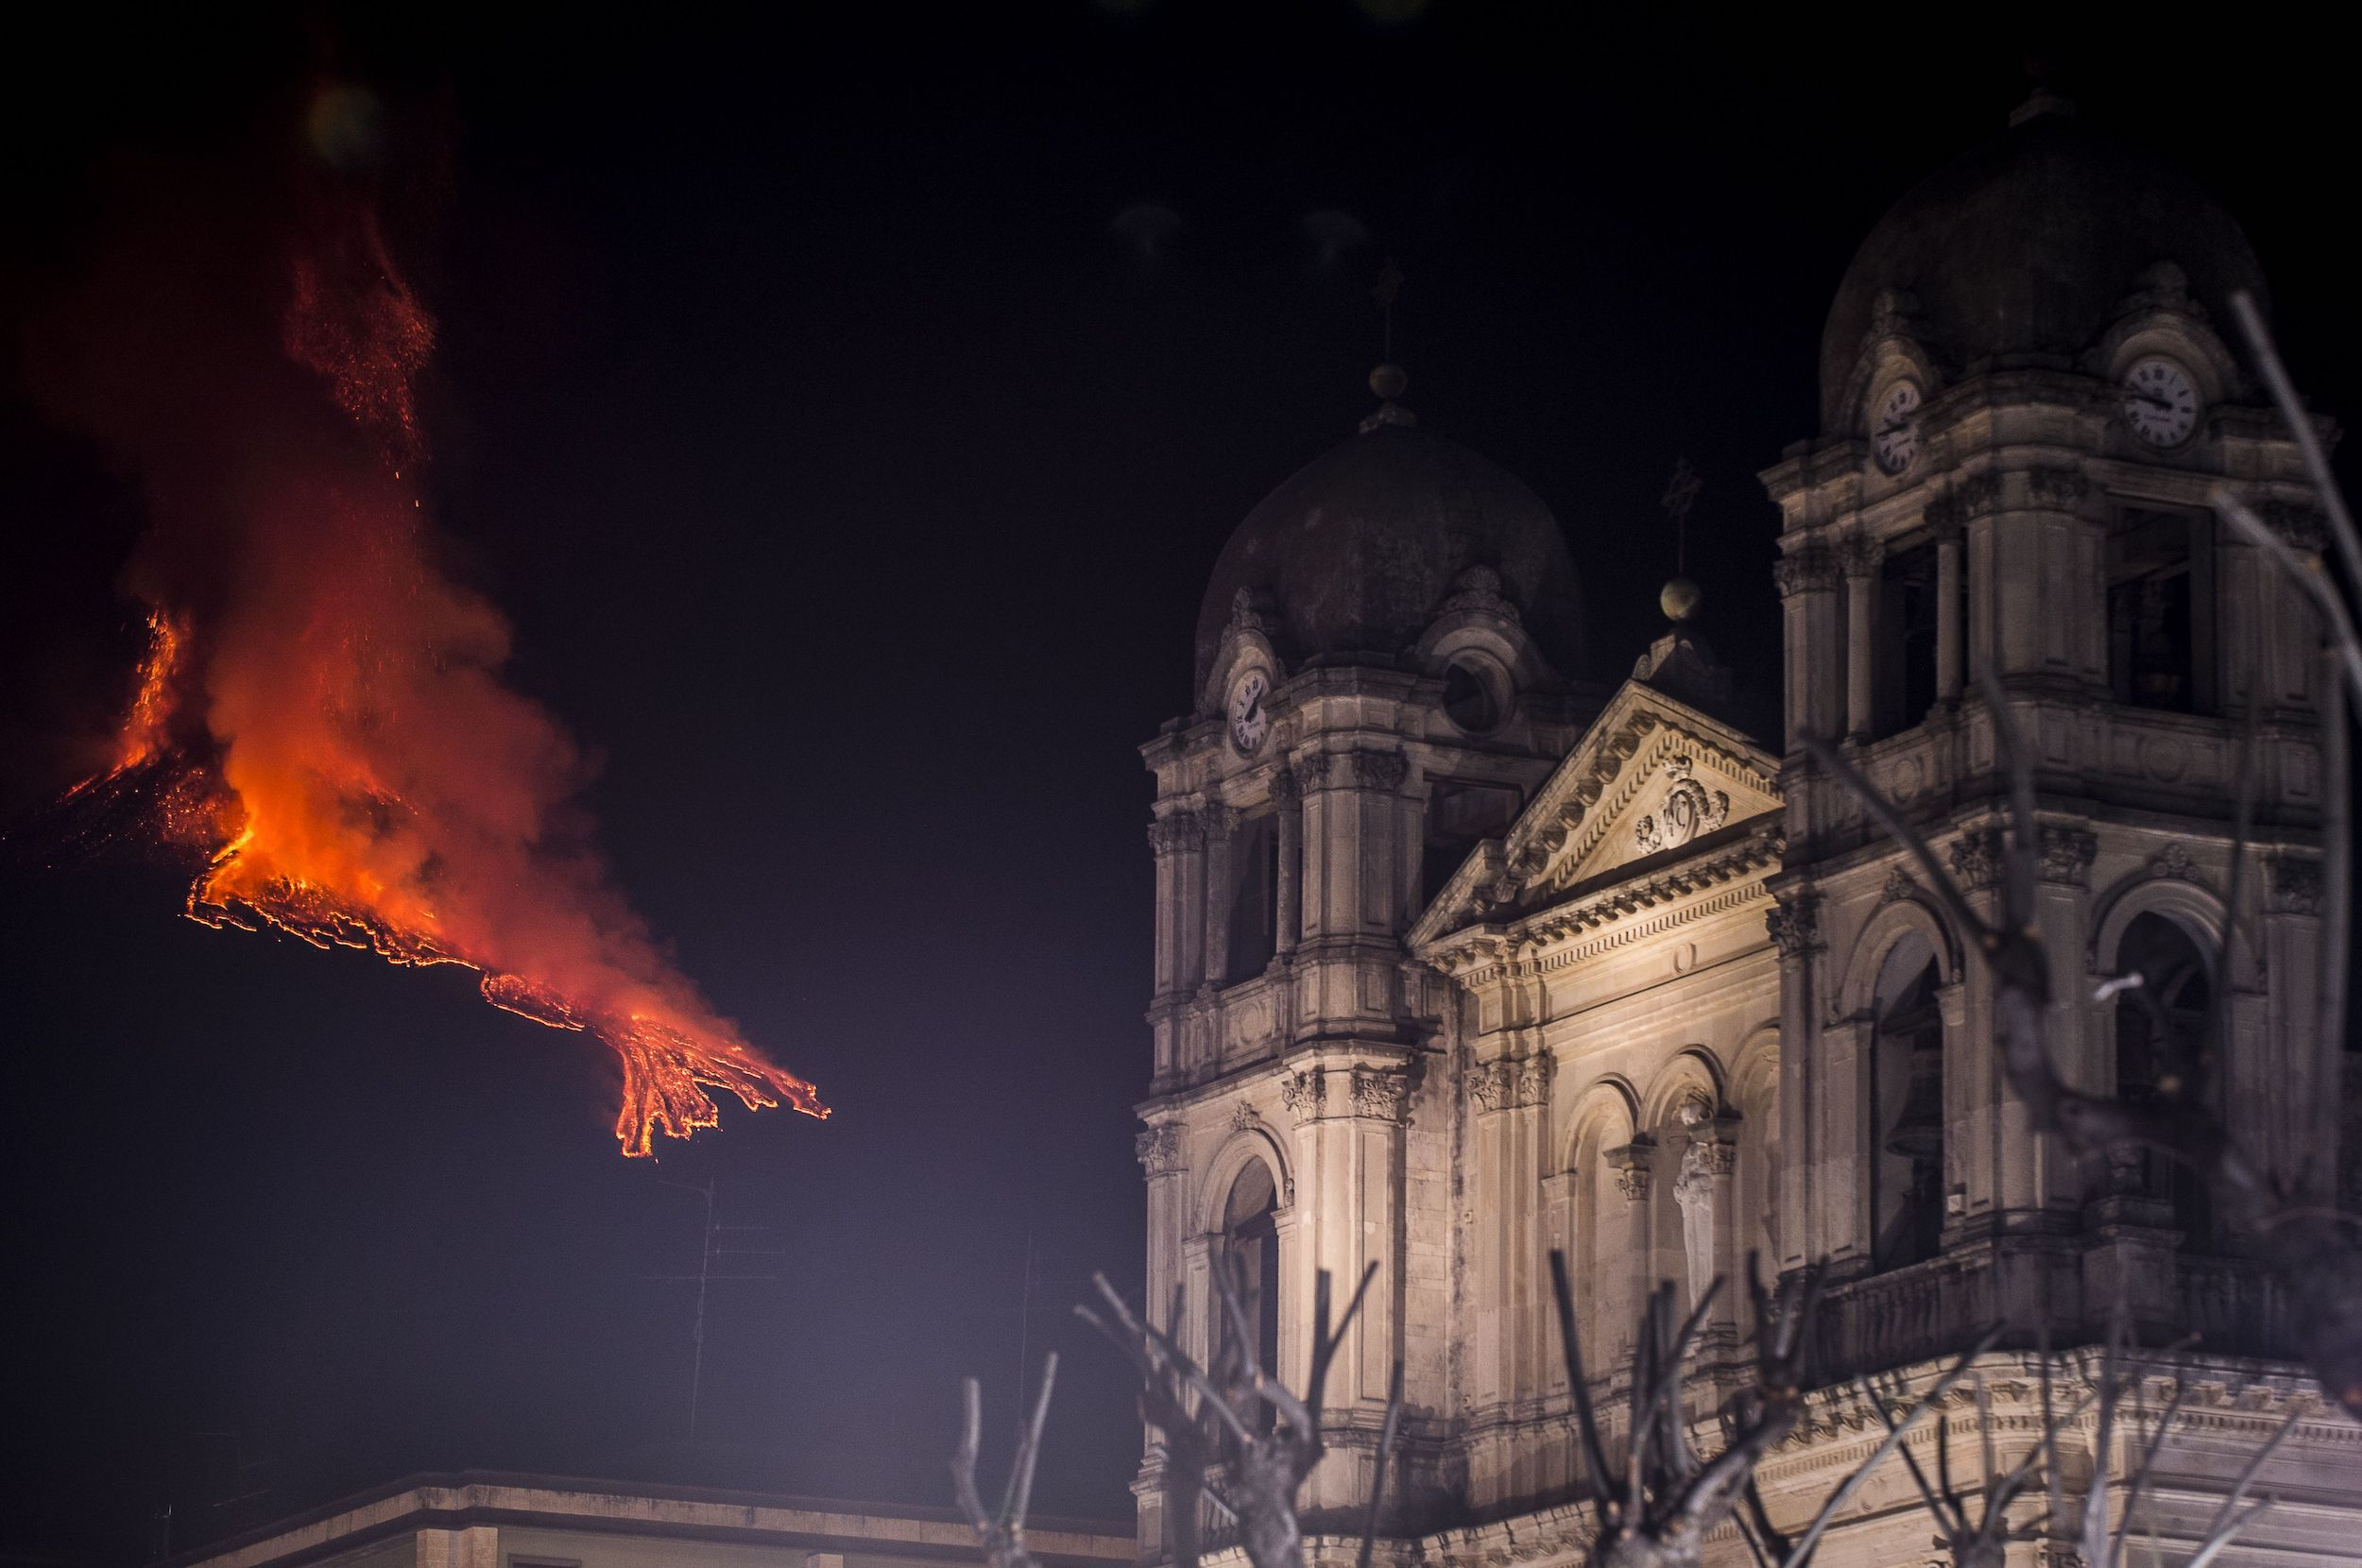 A church in Catania, Italy stands undisturbed as Mount Etna erupts miles away.